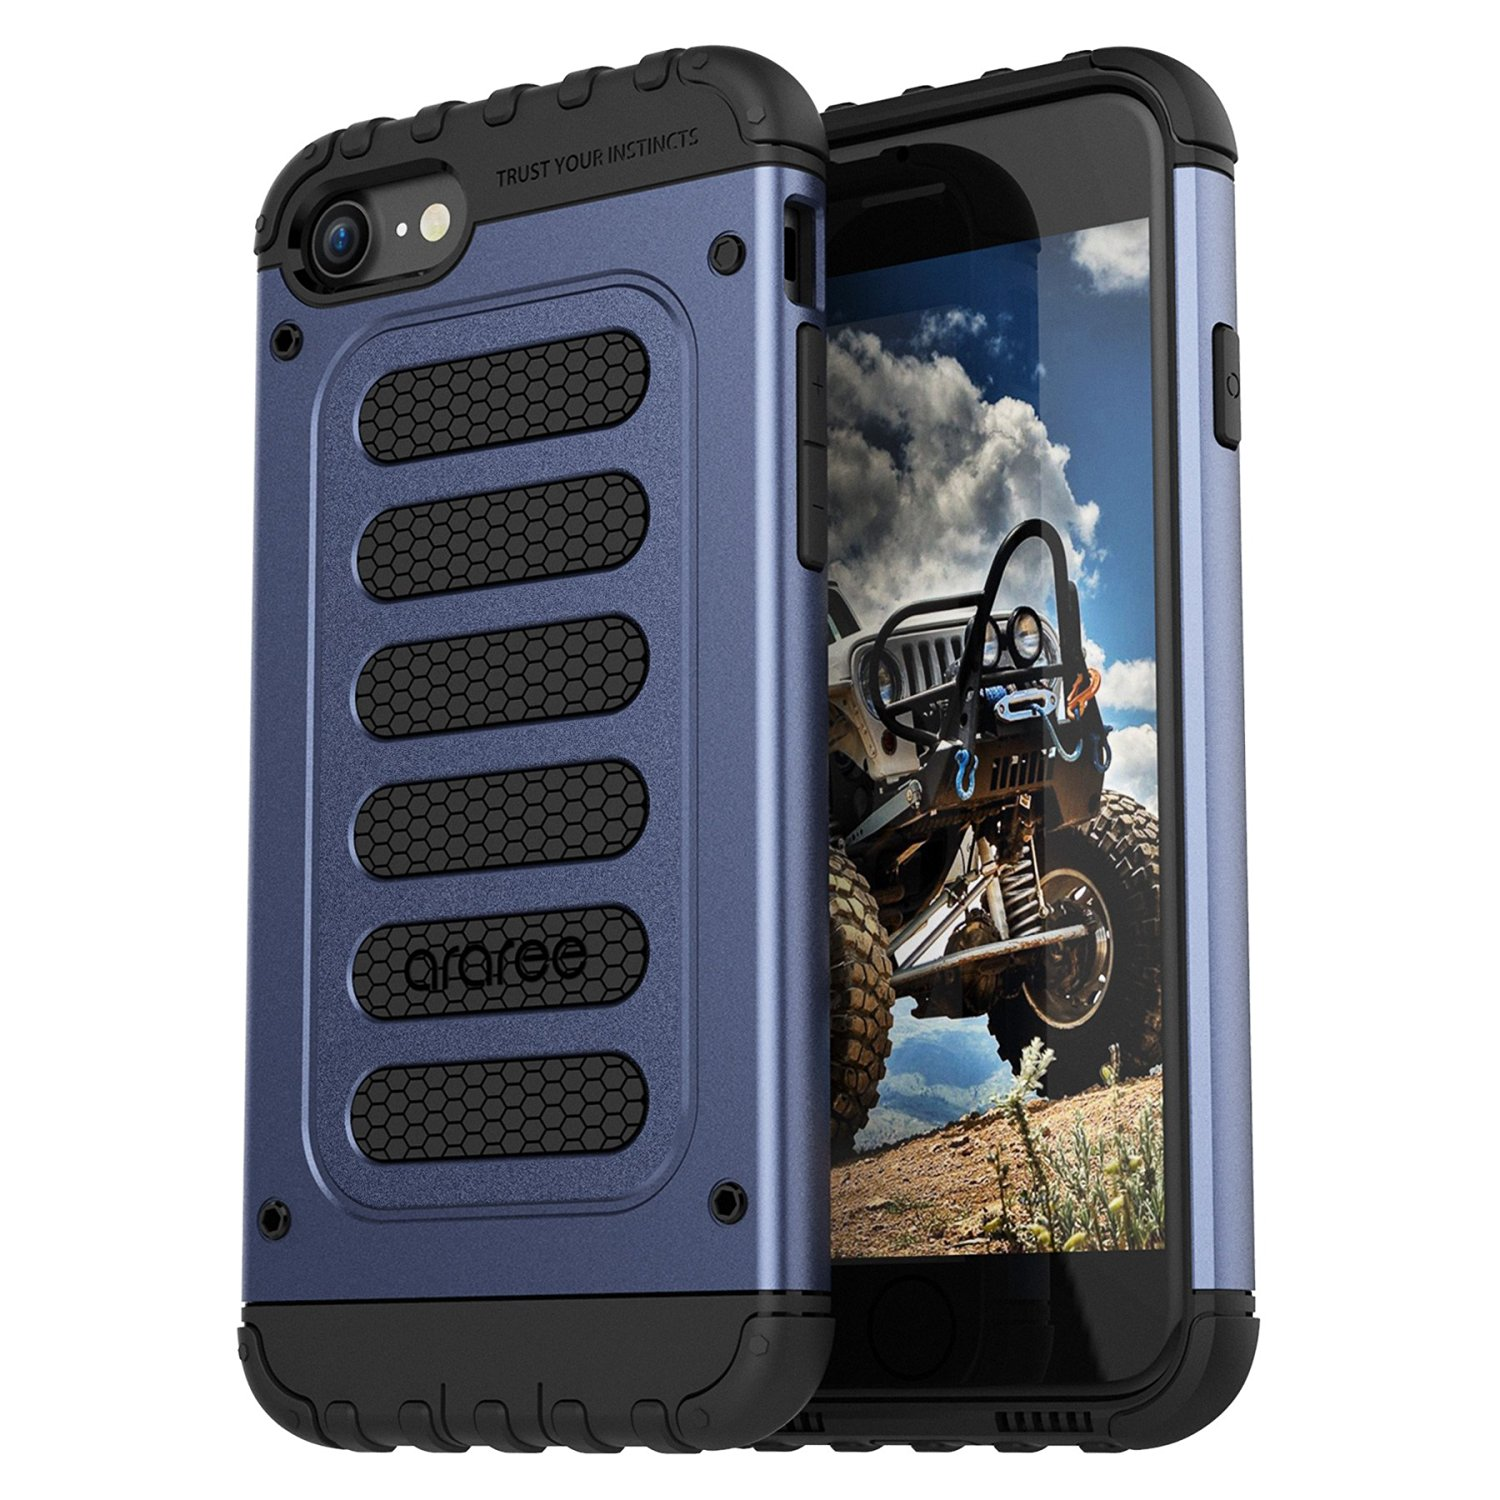 Araree Wrangle Force IPhone 7 Rugged Case - Gravity Blue